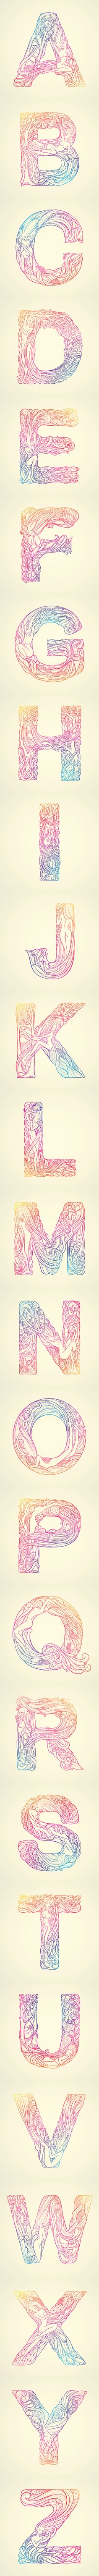 Whispered Garden Alphabets - ThuyMattit by Thuy Mat tit, via Behance